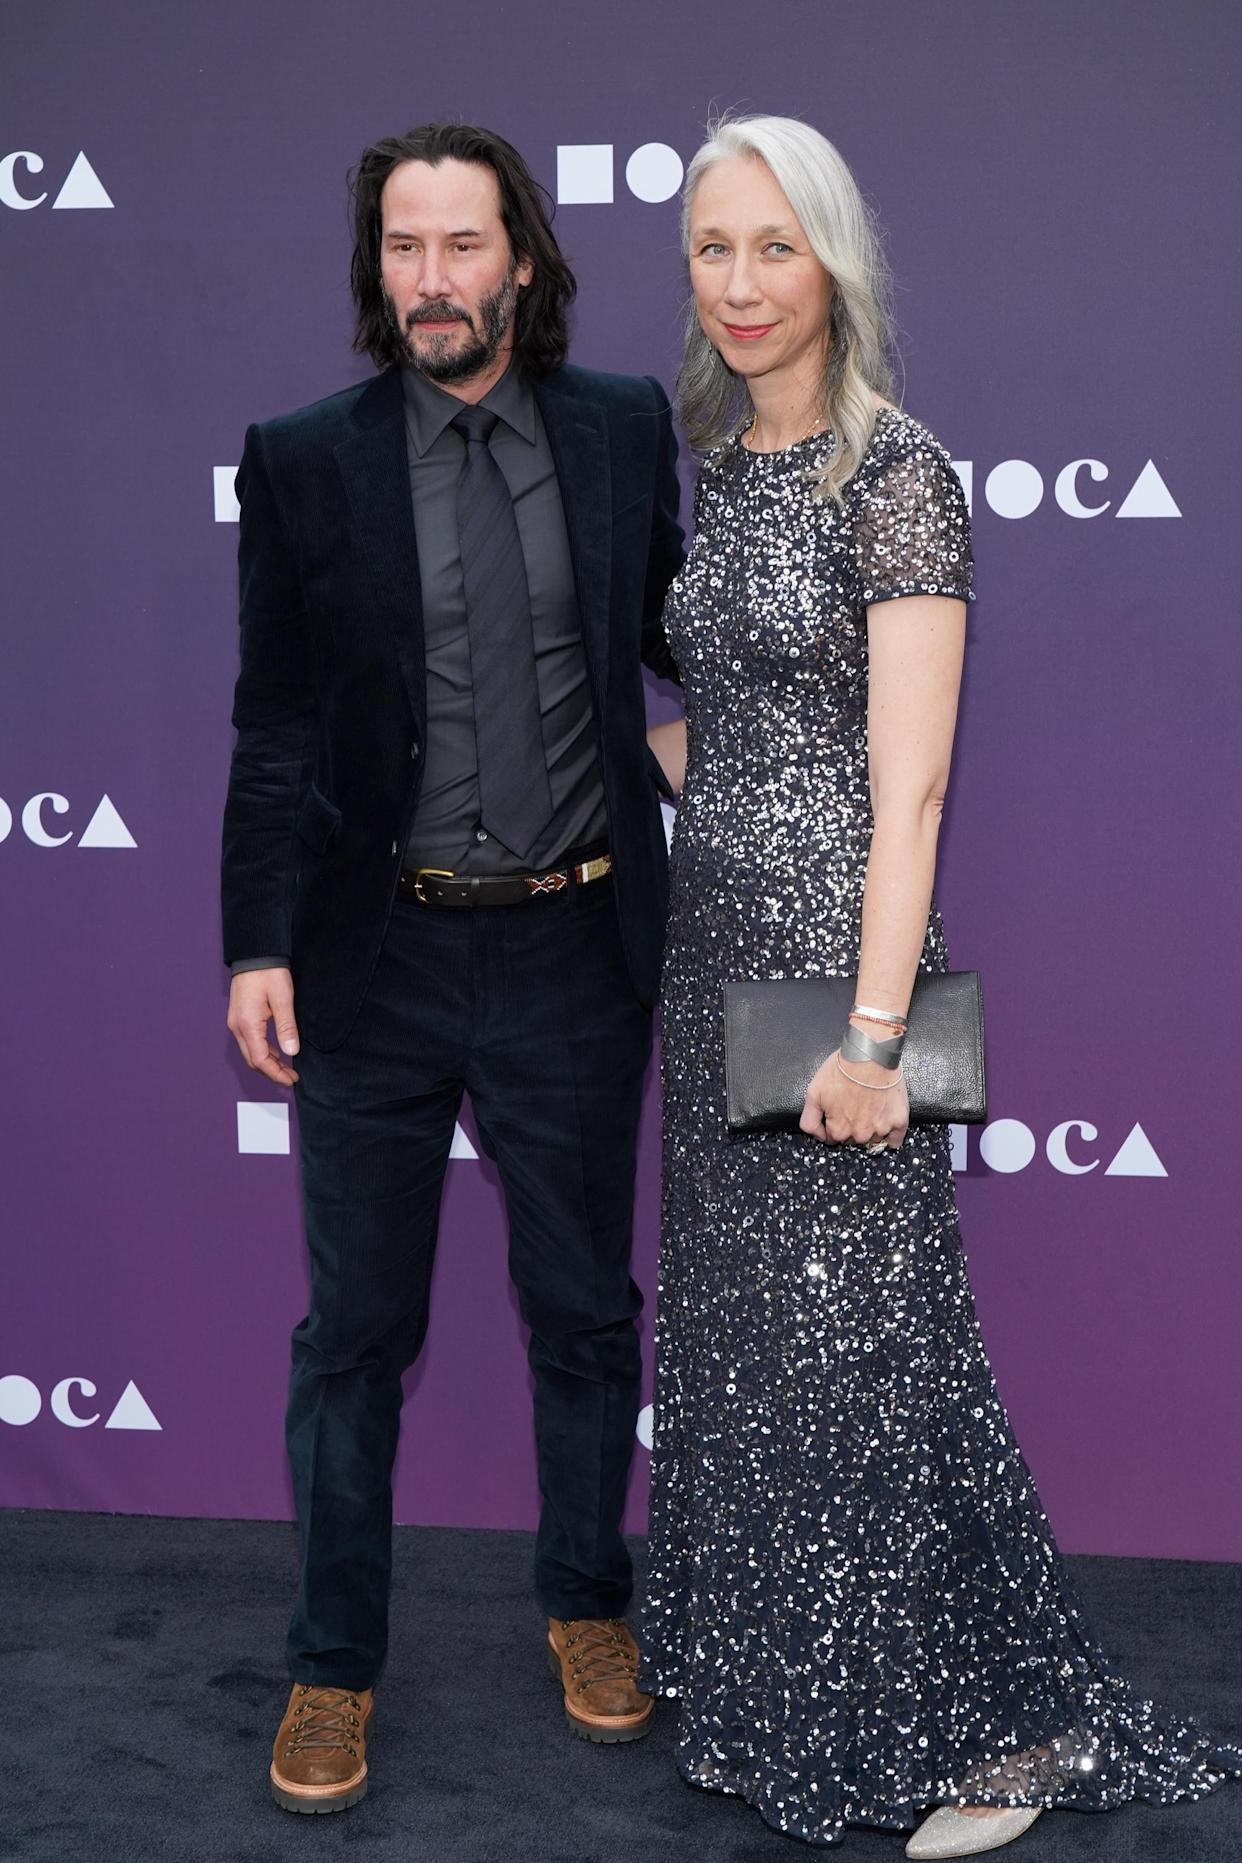 Keanu Reeves Steps Out Hand-in-Hand With Alexandra Grant ...  |Alexandra Grant